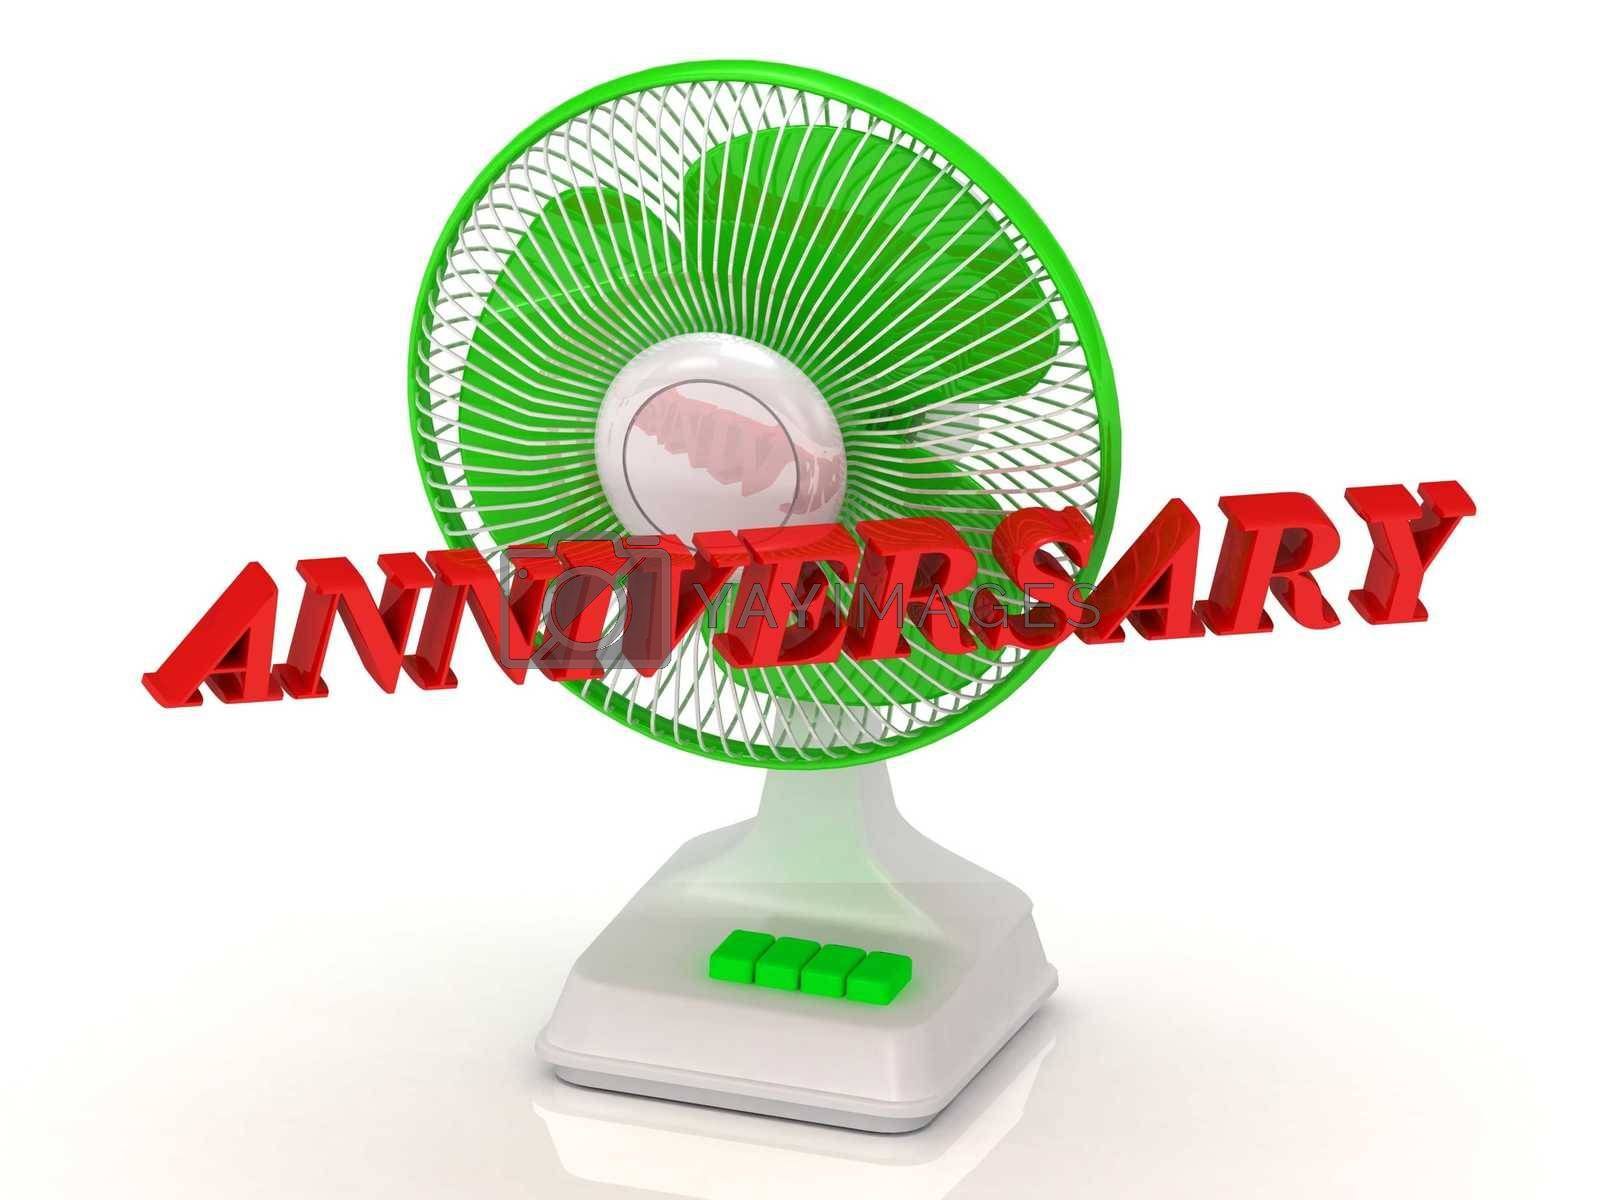 ANNIVERSARY - Green Fan and bright color letters on a white background